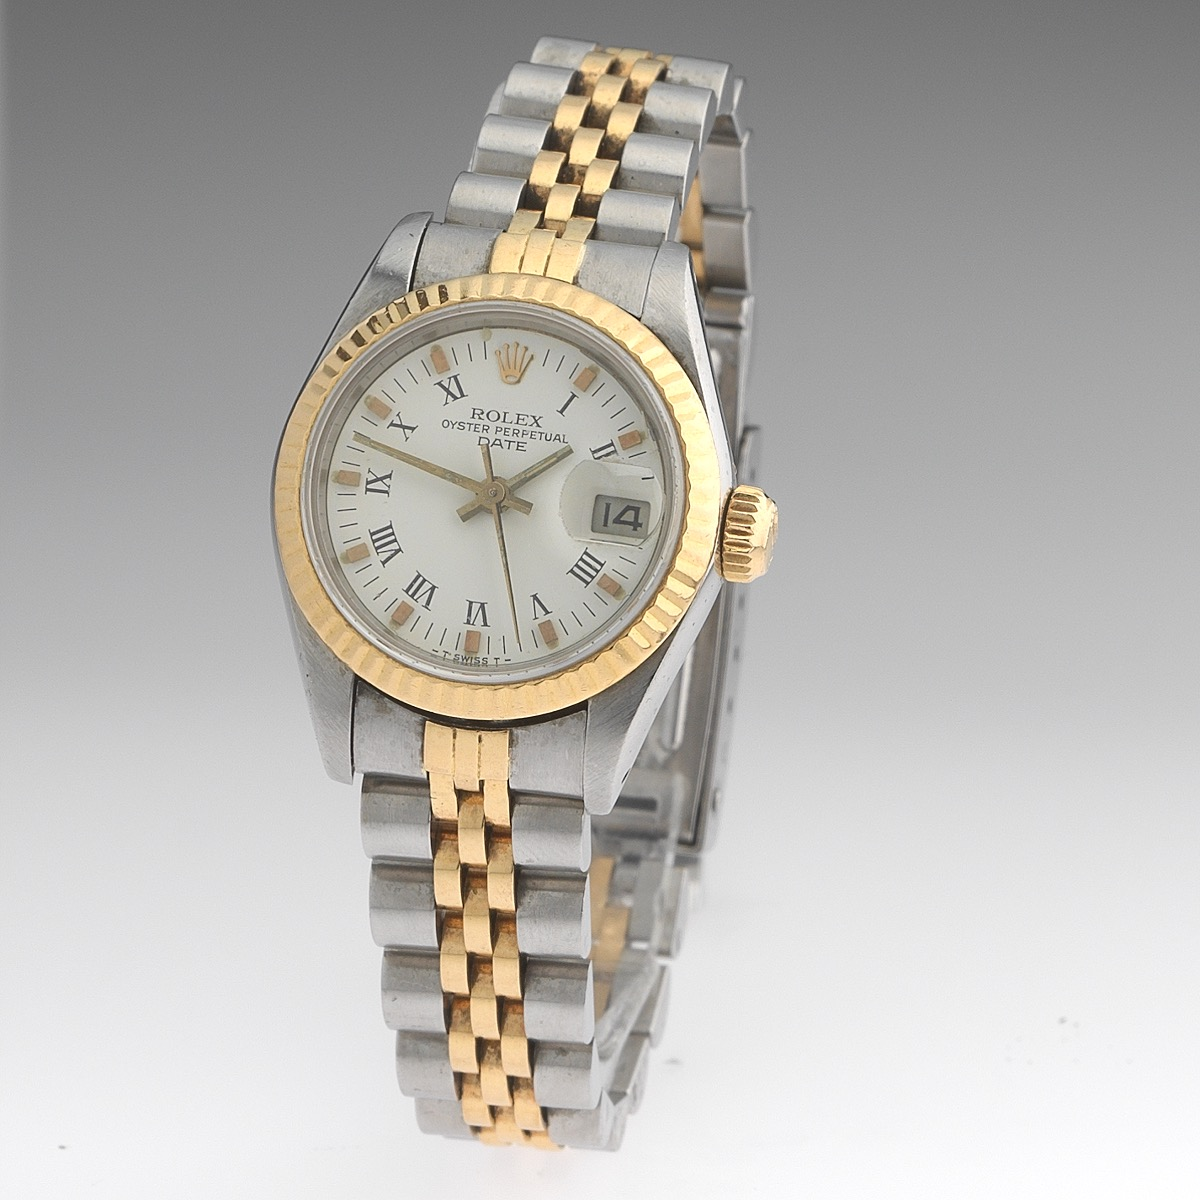 Ladies Rolex Two Tone Oyster Perpetual Date Watch 10 29